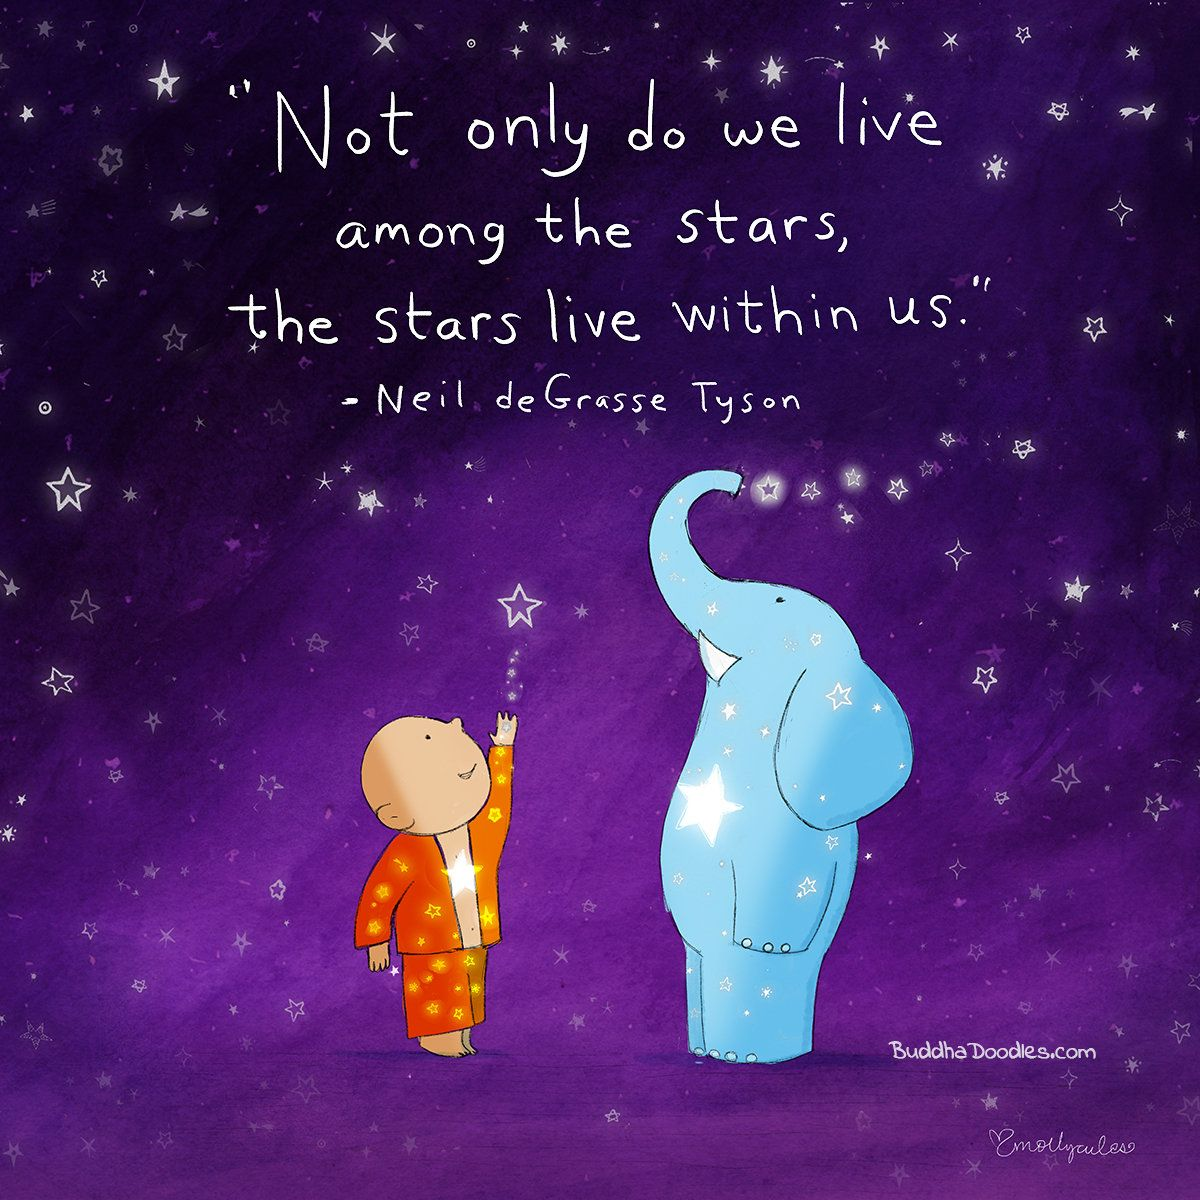 Not Only Do We Live Among The Stars The Stars Live Within Us Neil Degrasse Tyson Buddha Doodle Buddah Doodles Buddha Thoughts